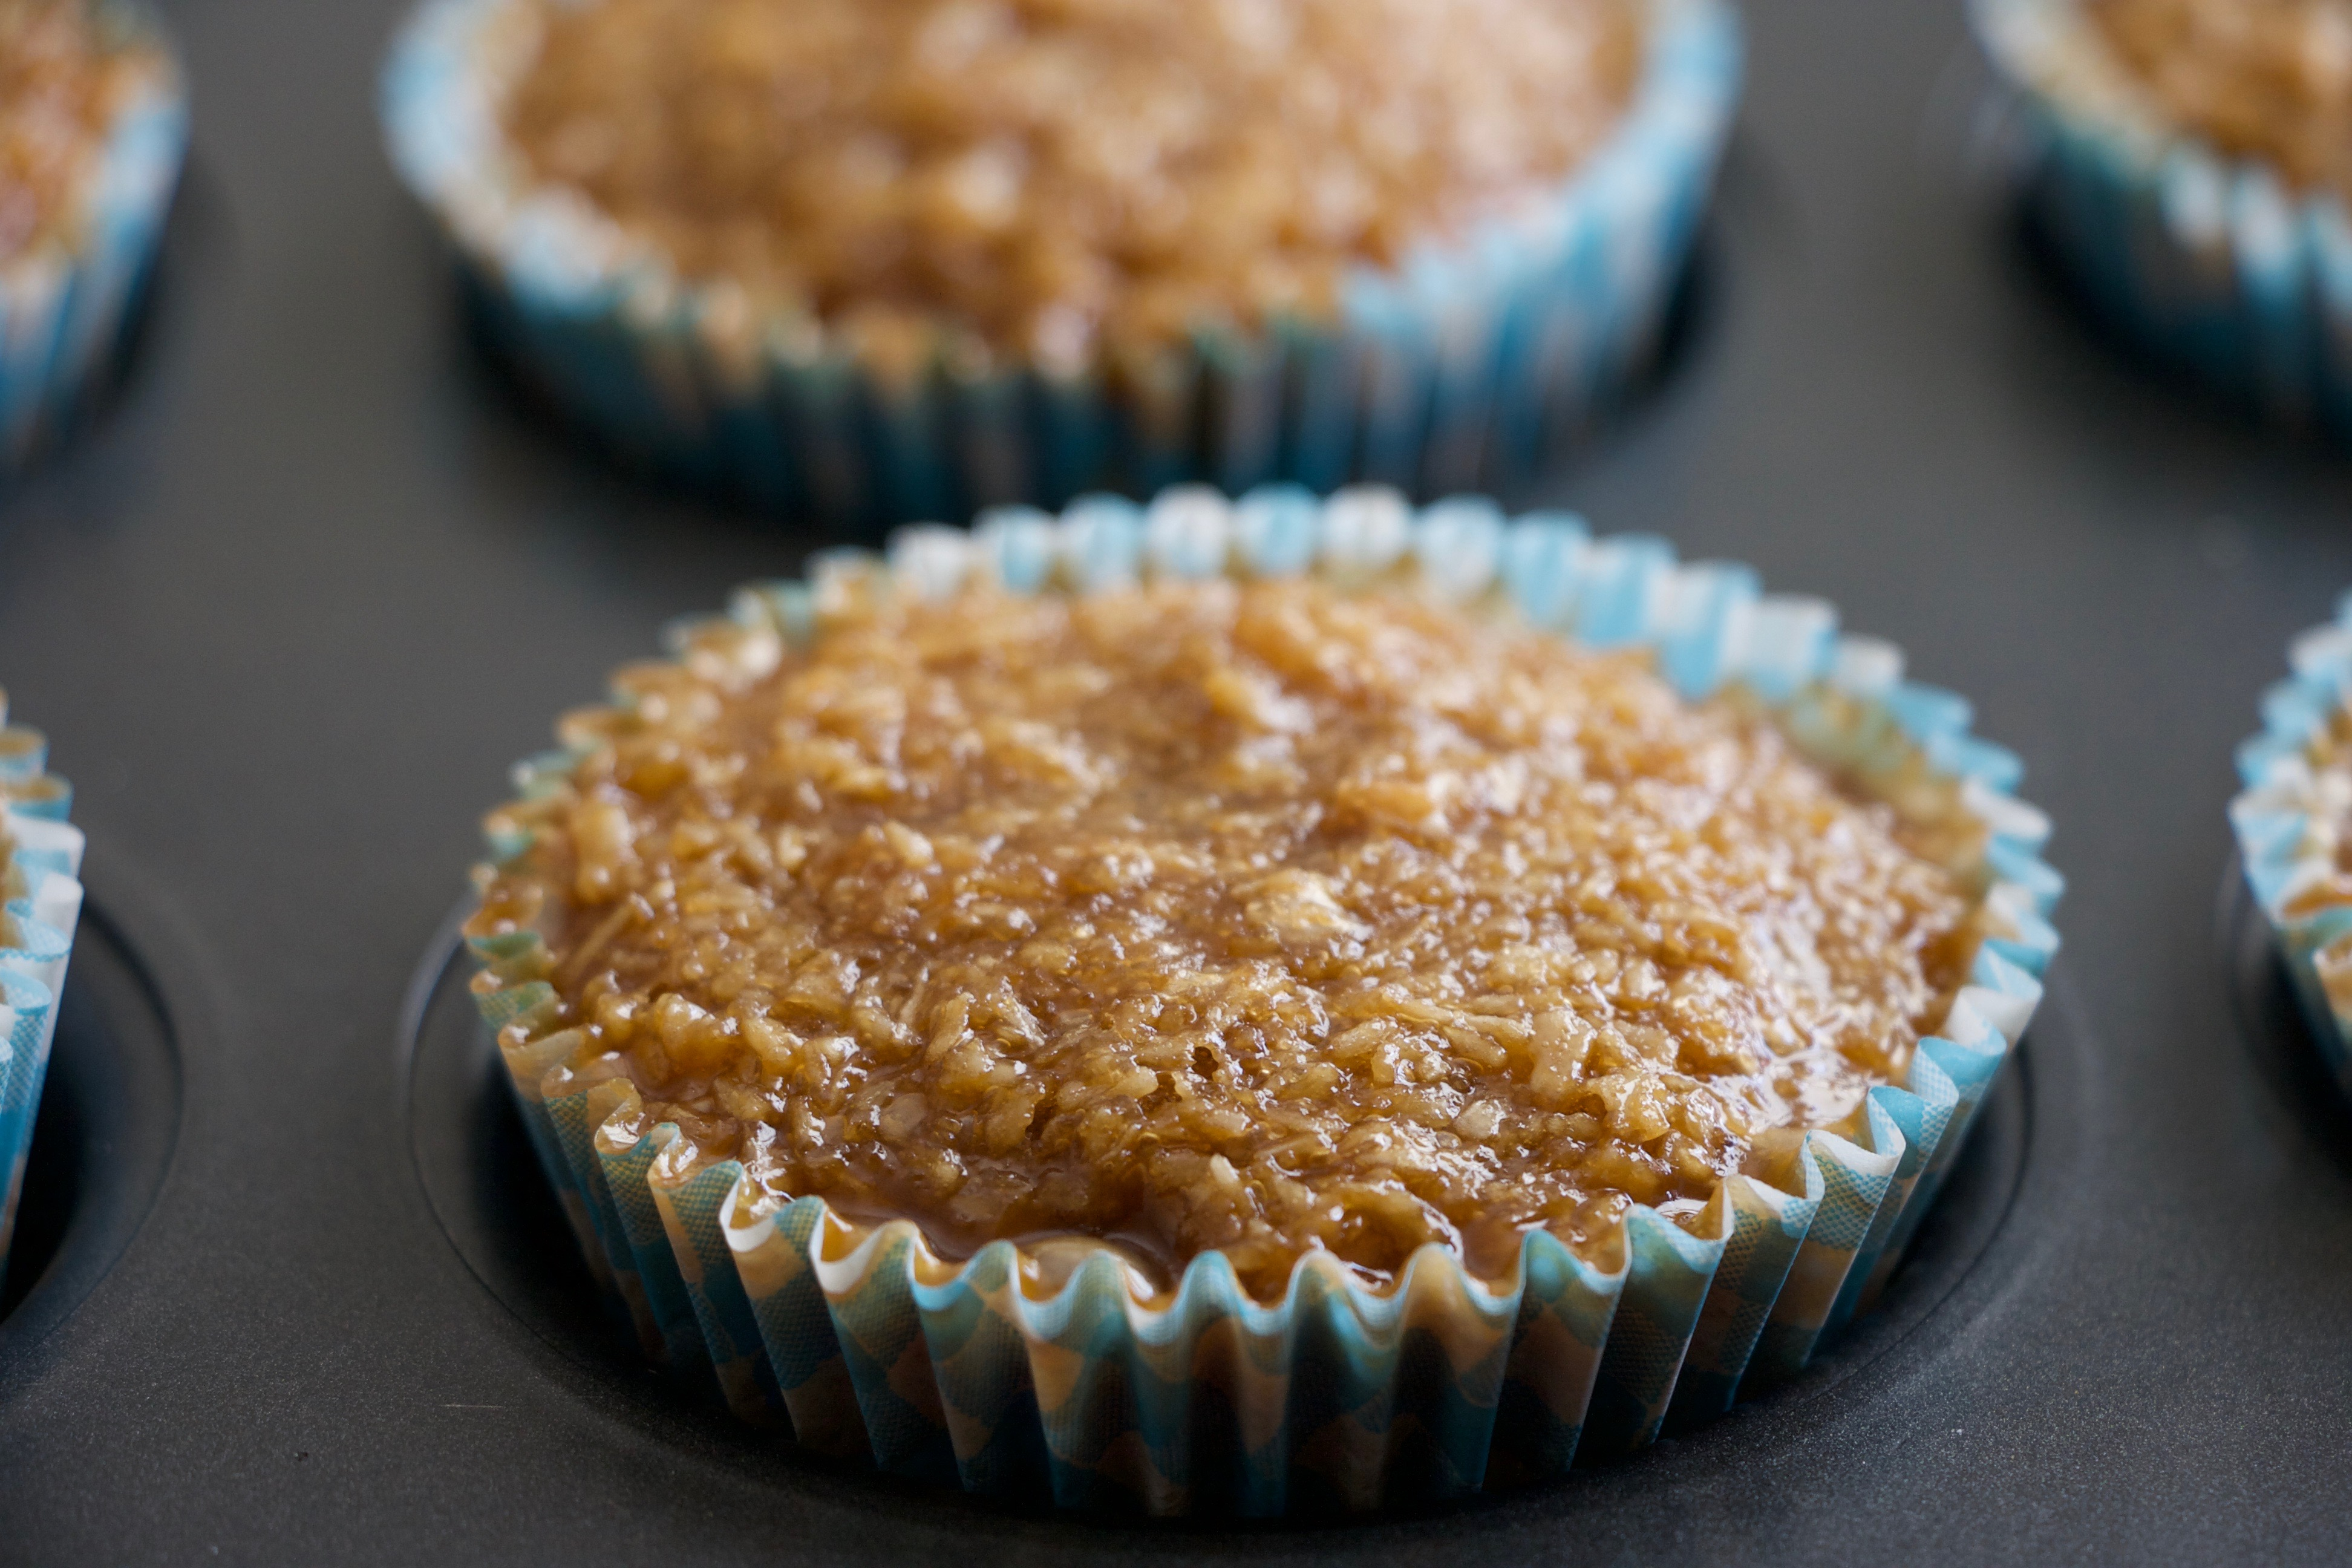 Mille Marie muffins - drømmekage med marcipan